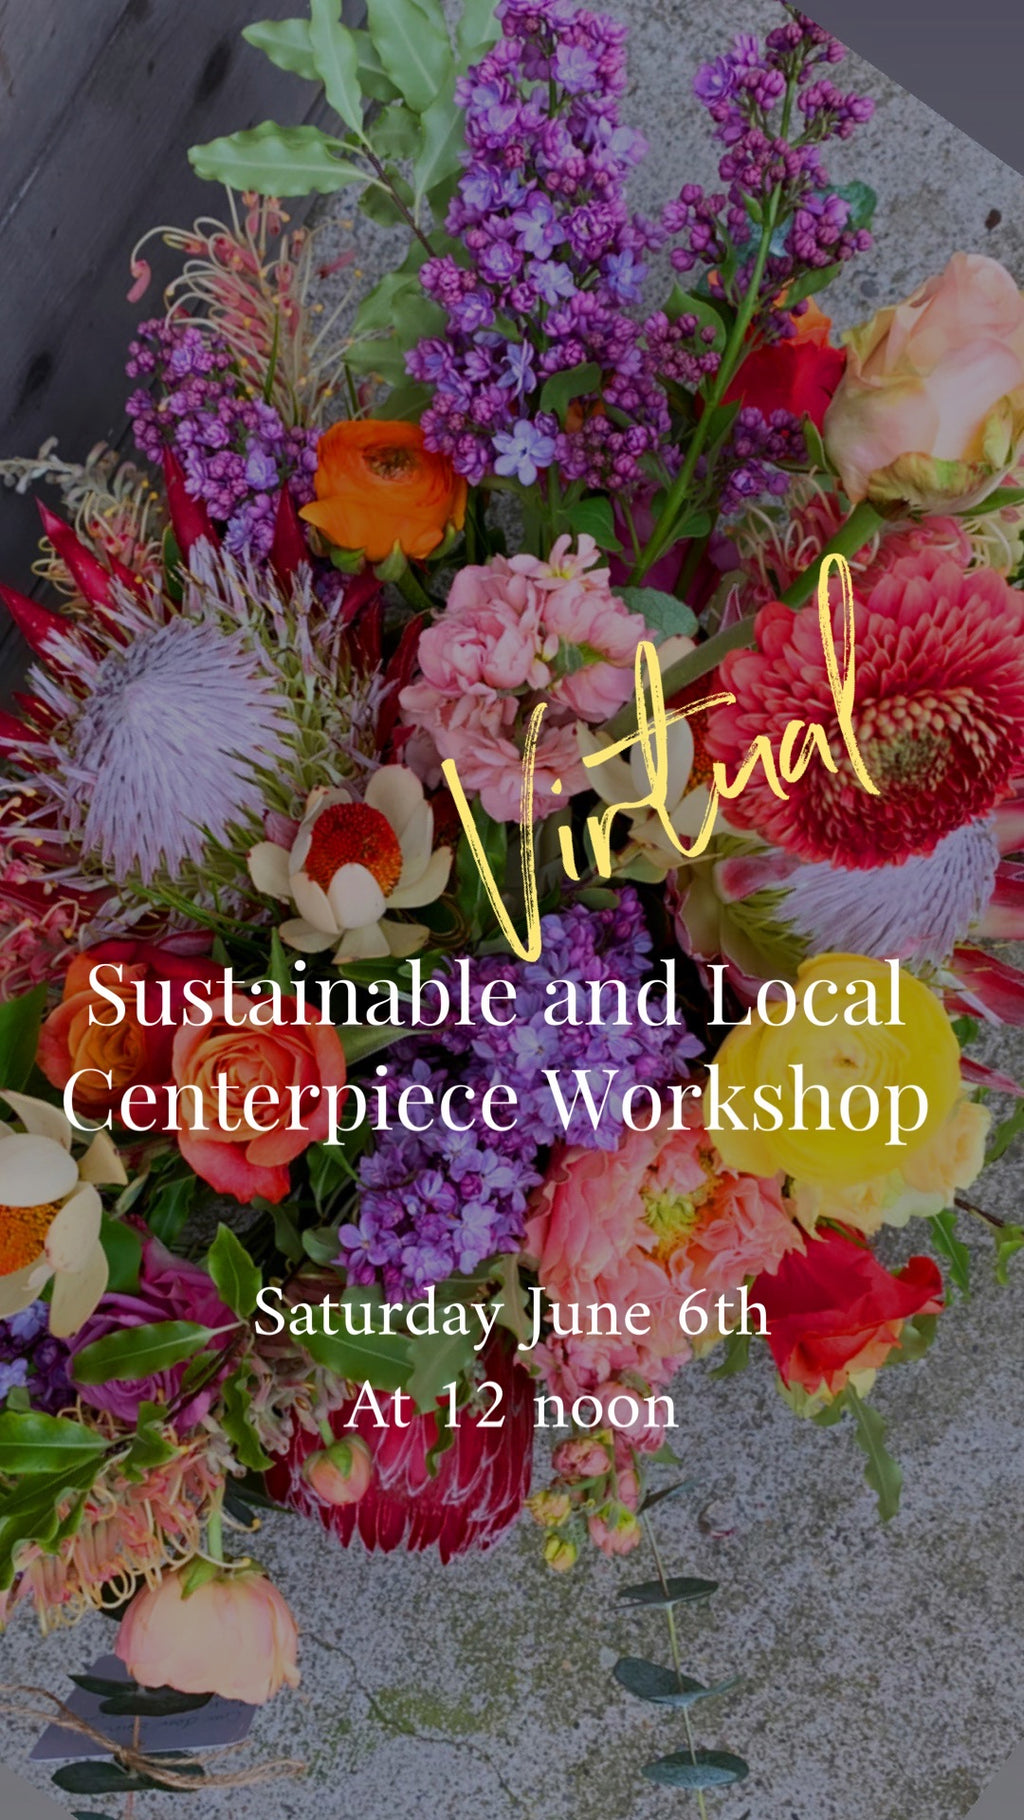 Another Sustainable Centerpiece Workshop (Virtual), July 18th